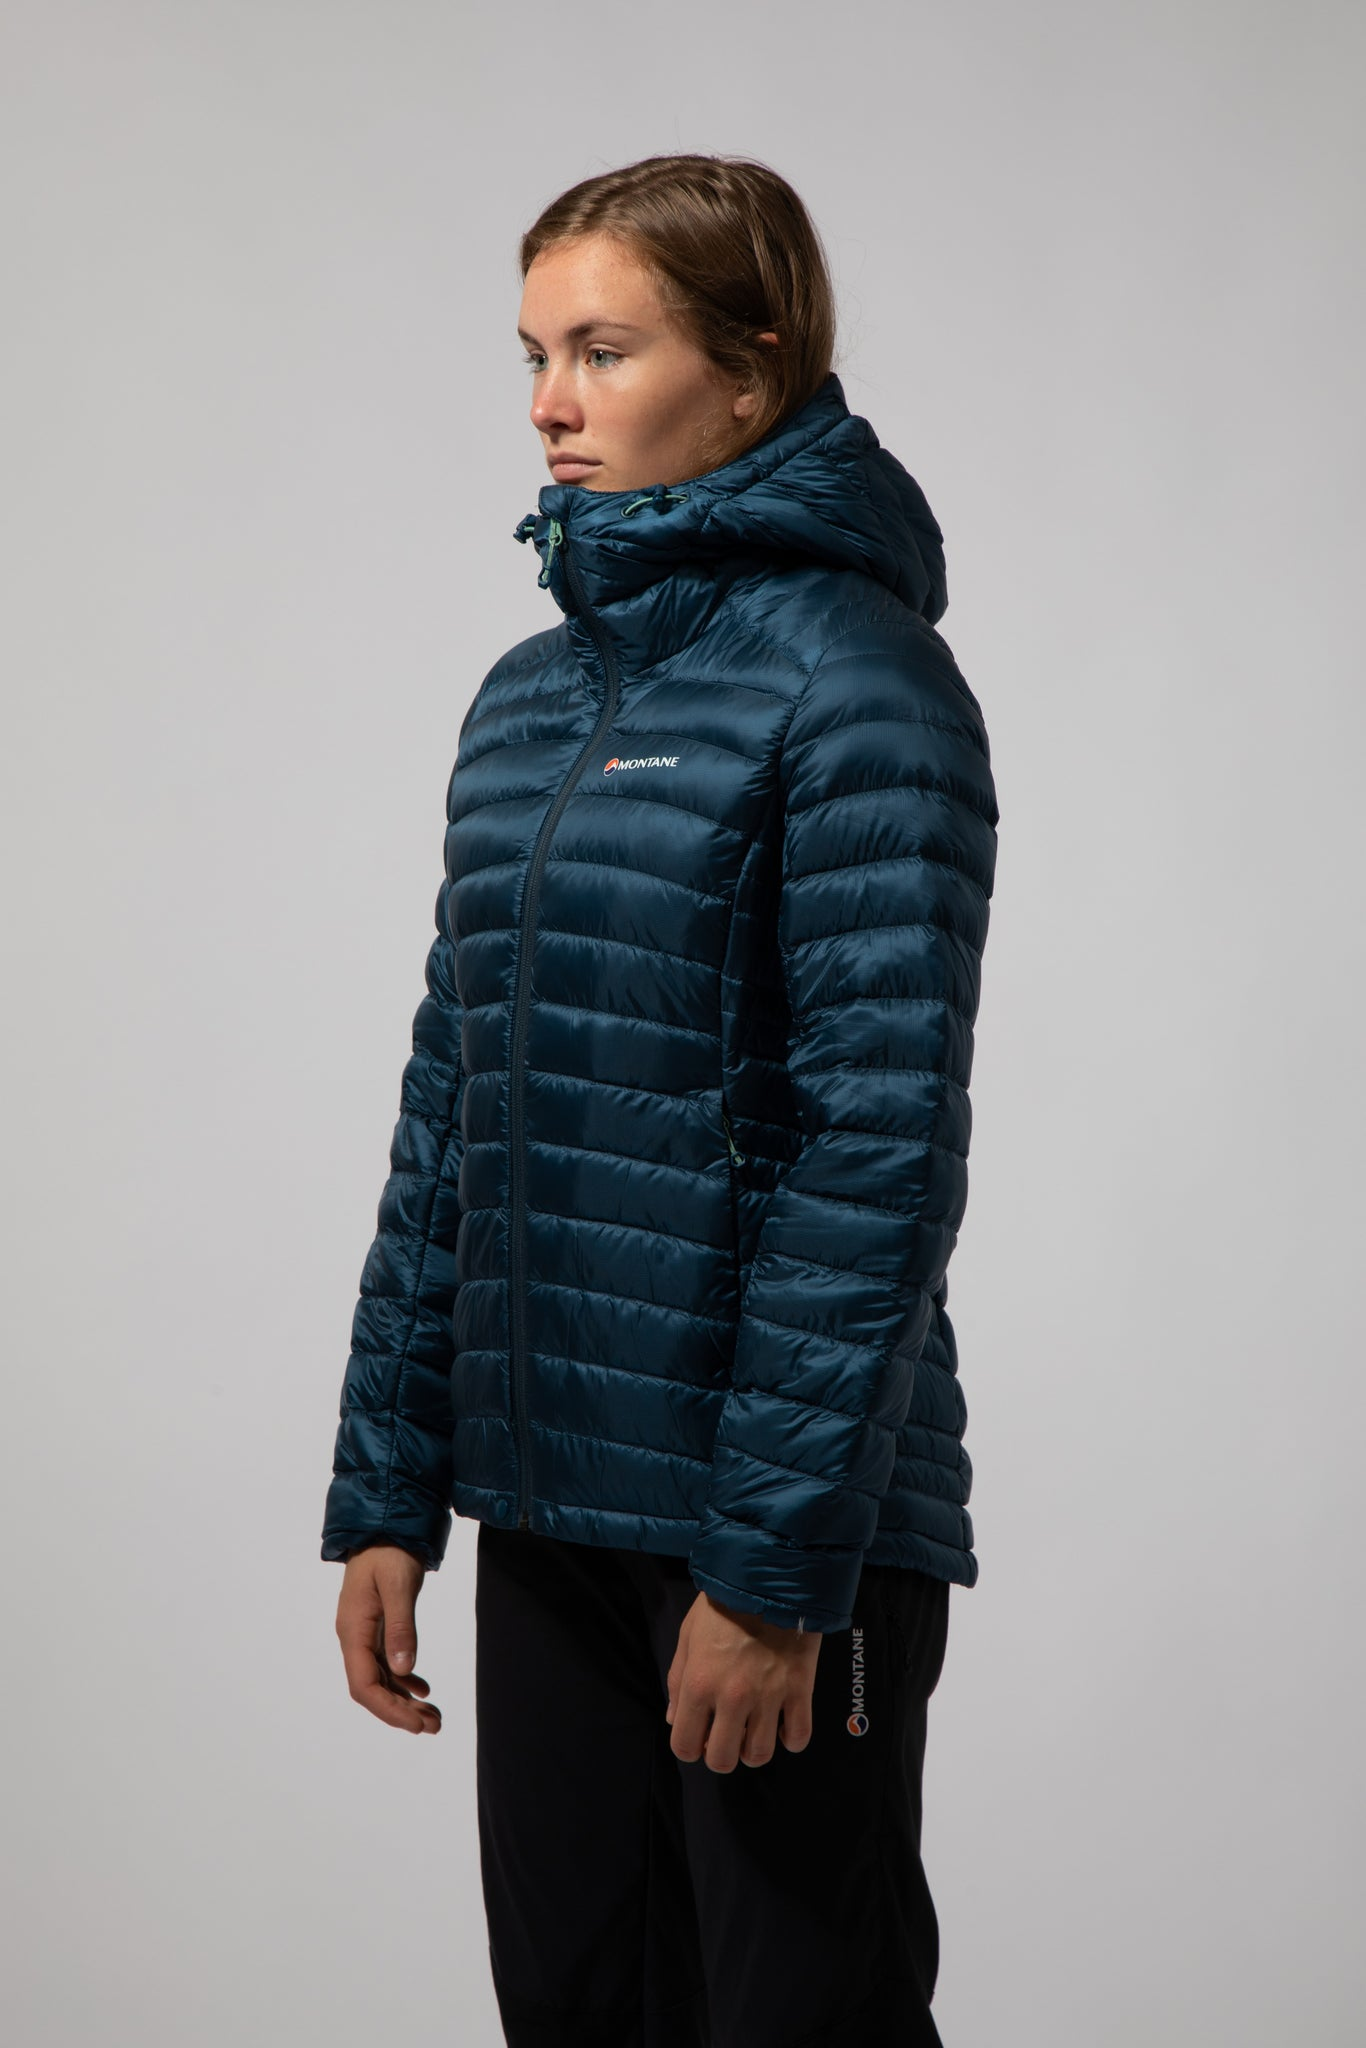 AW19 Montane Featherlite Down Womens Outdoor Giacca